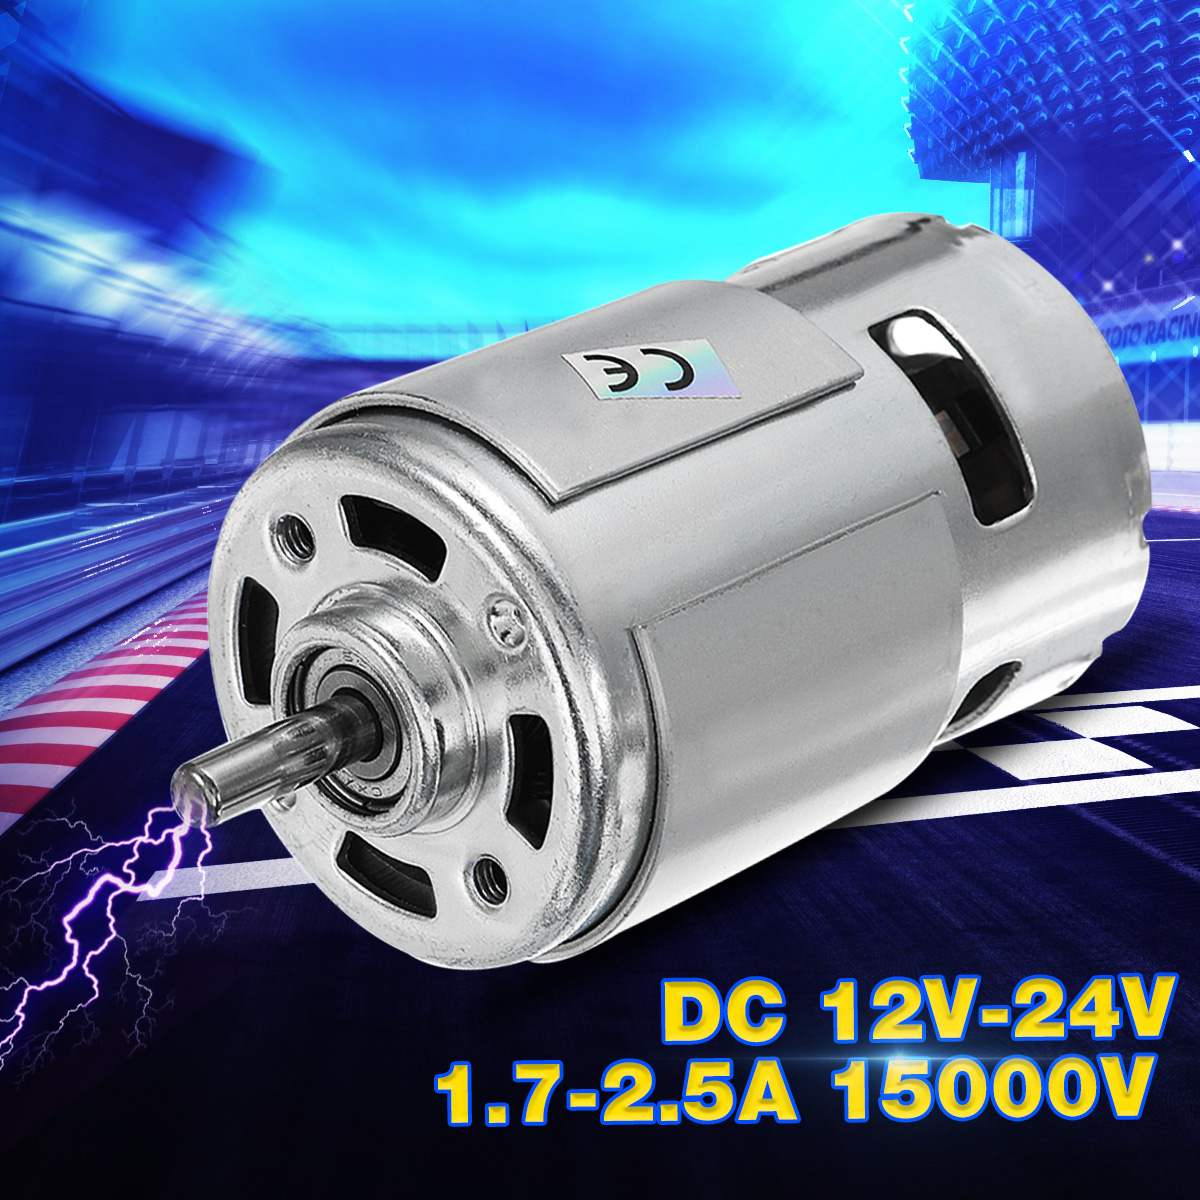 1PC DC 24V 21000RPM High Speed Large torque DC 775 Motor Electric Power Tool new Motor & Accessories DC Motor1PC DC 24V 21000RPM High Speed Large torque DC 775 Motor Electric Power Tool new Motor & Accessories DC Motor